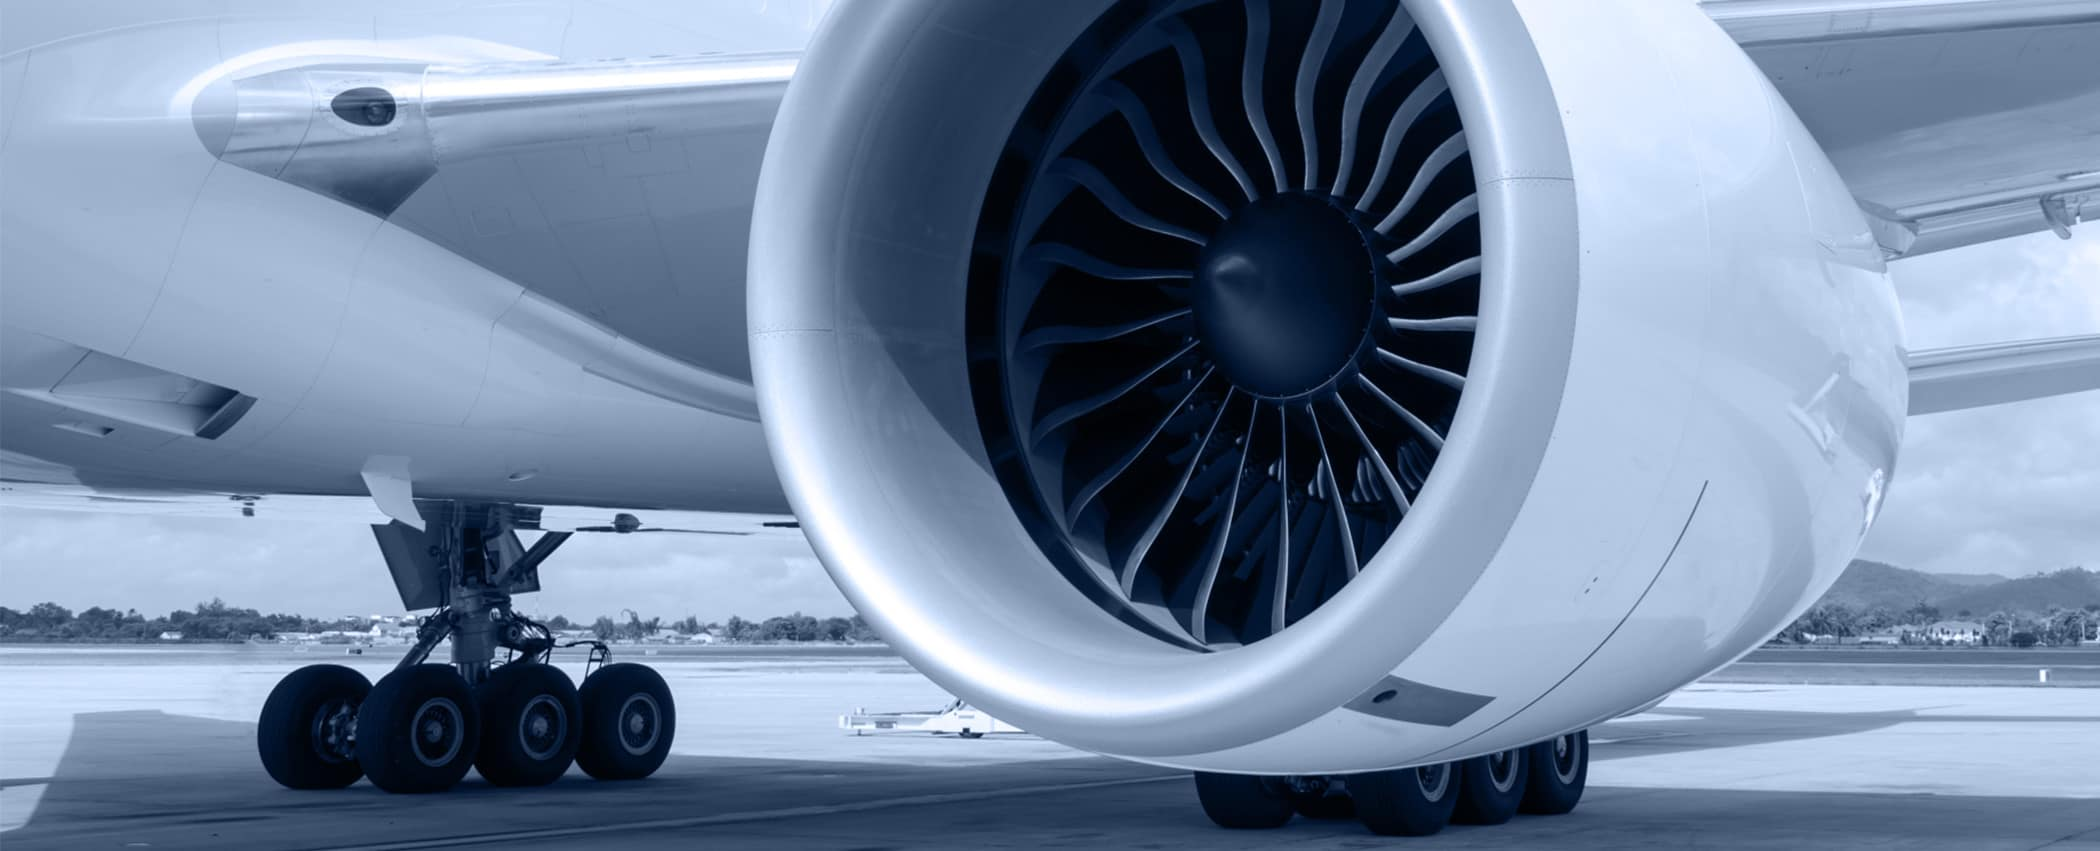 Close-up of of commercial airplane jet engine.